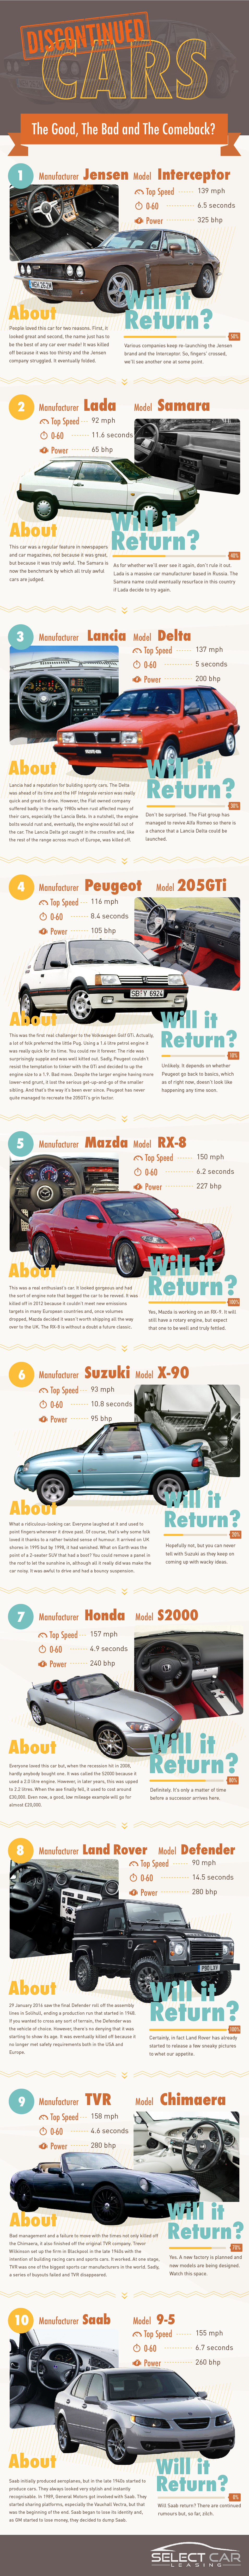 Iconic Cars That Were Discontinued – Will They Return? - Infographic